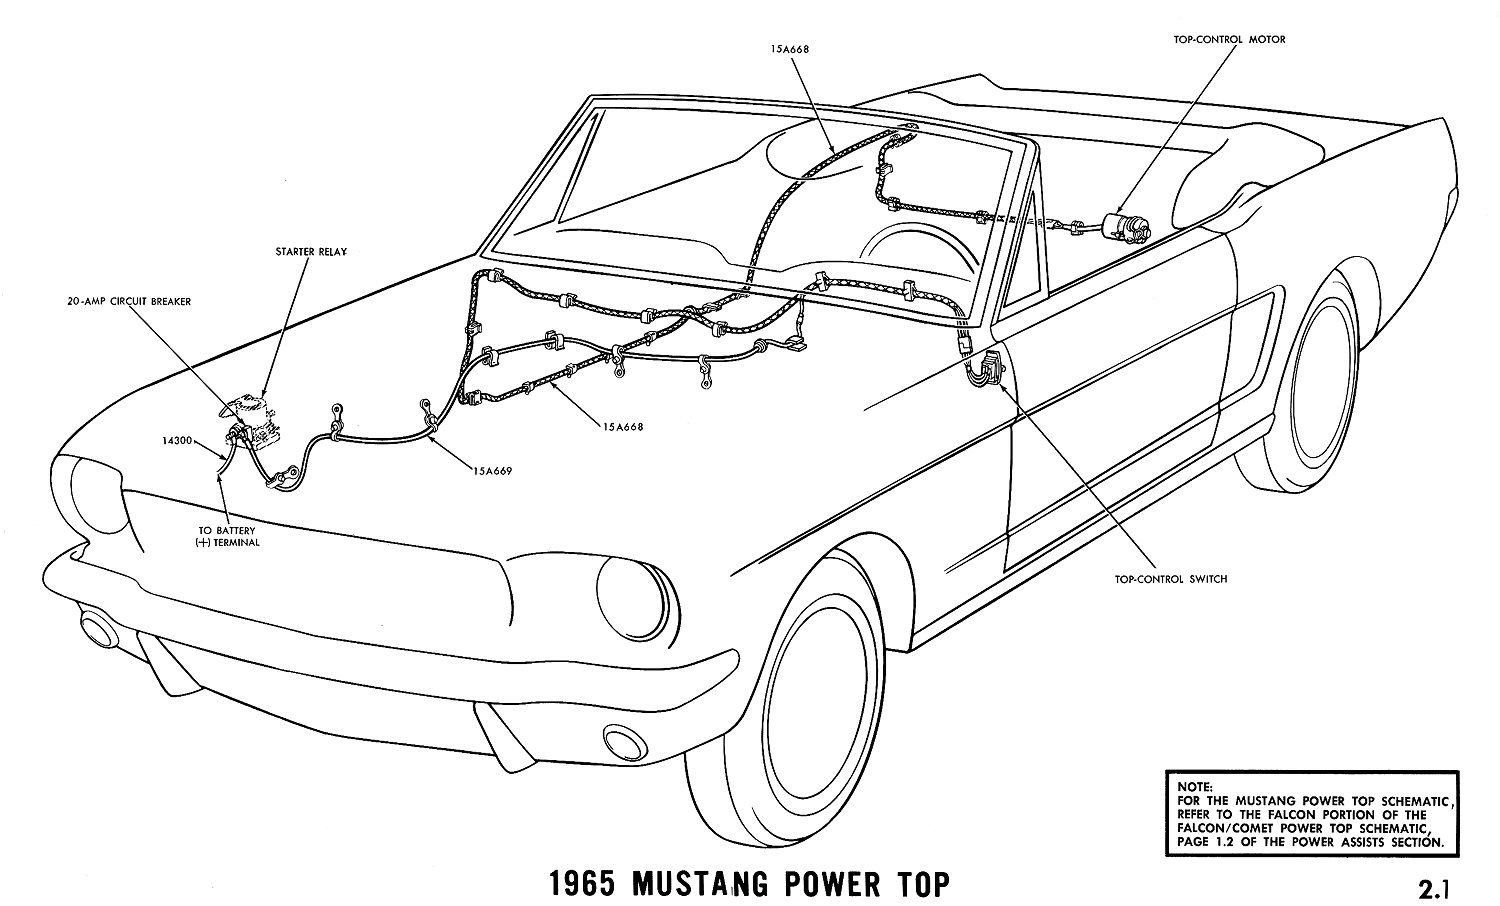 1965j 1965 mustang wiring diagrams average joe restoration 1965 thunderbird alternator wiring diagram at soozxer.org